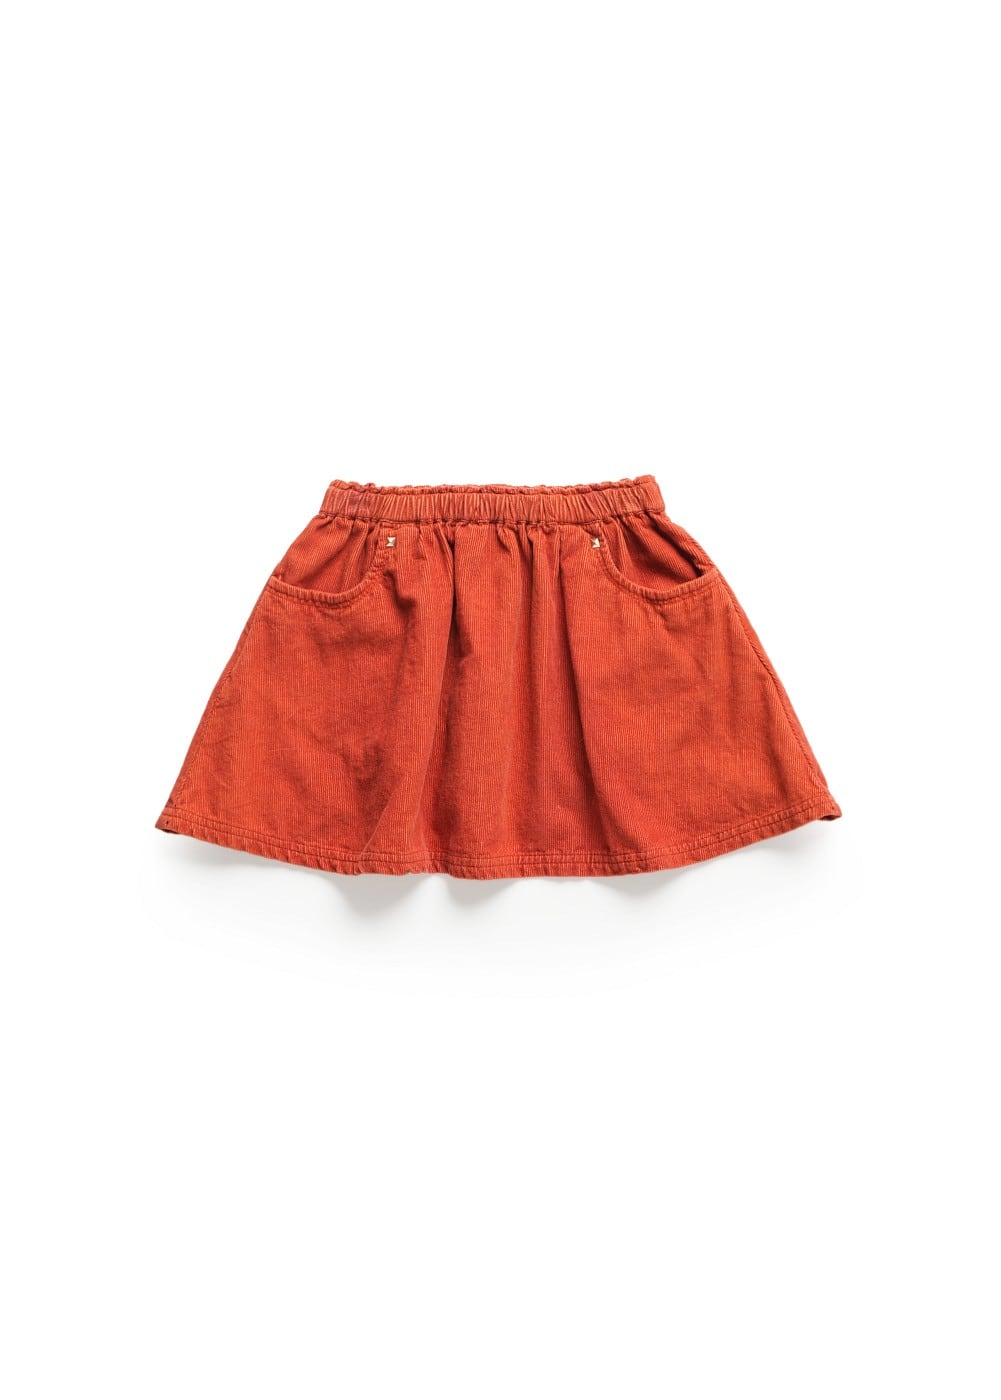 CORDUROY FLARED SKIRT